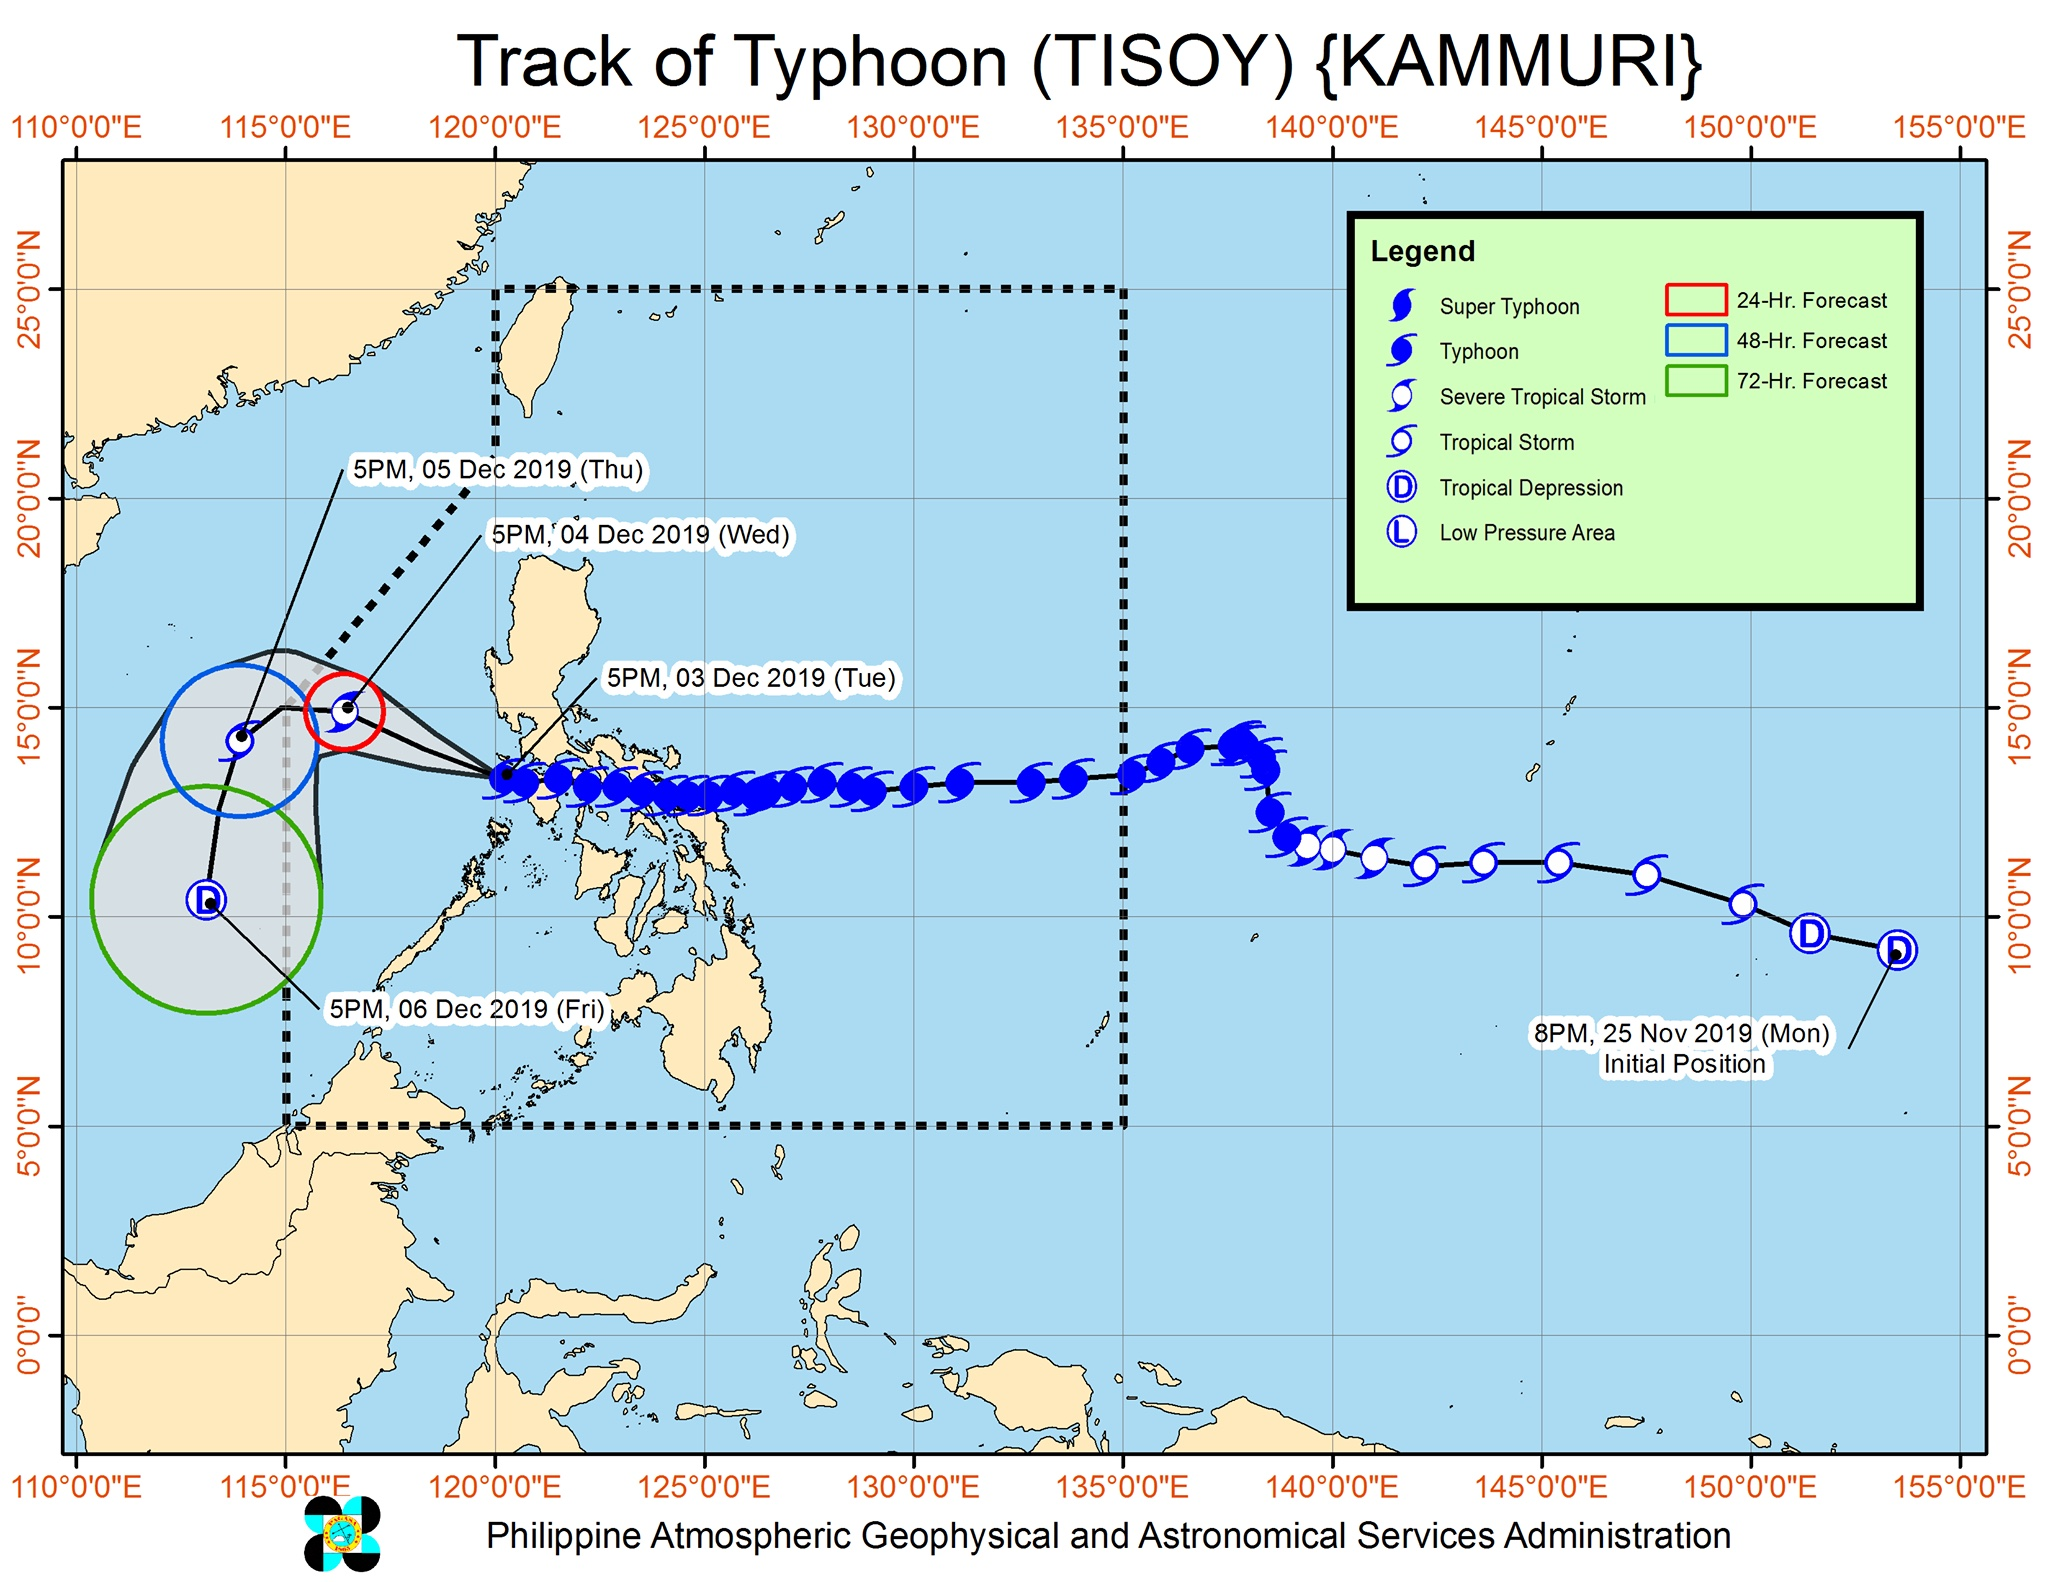 Typhoon Tisoy maintains strength over Mindoro Strait